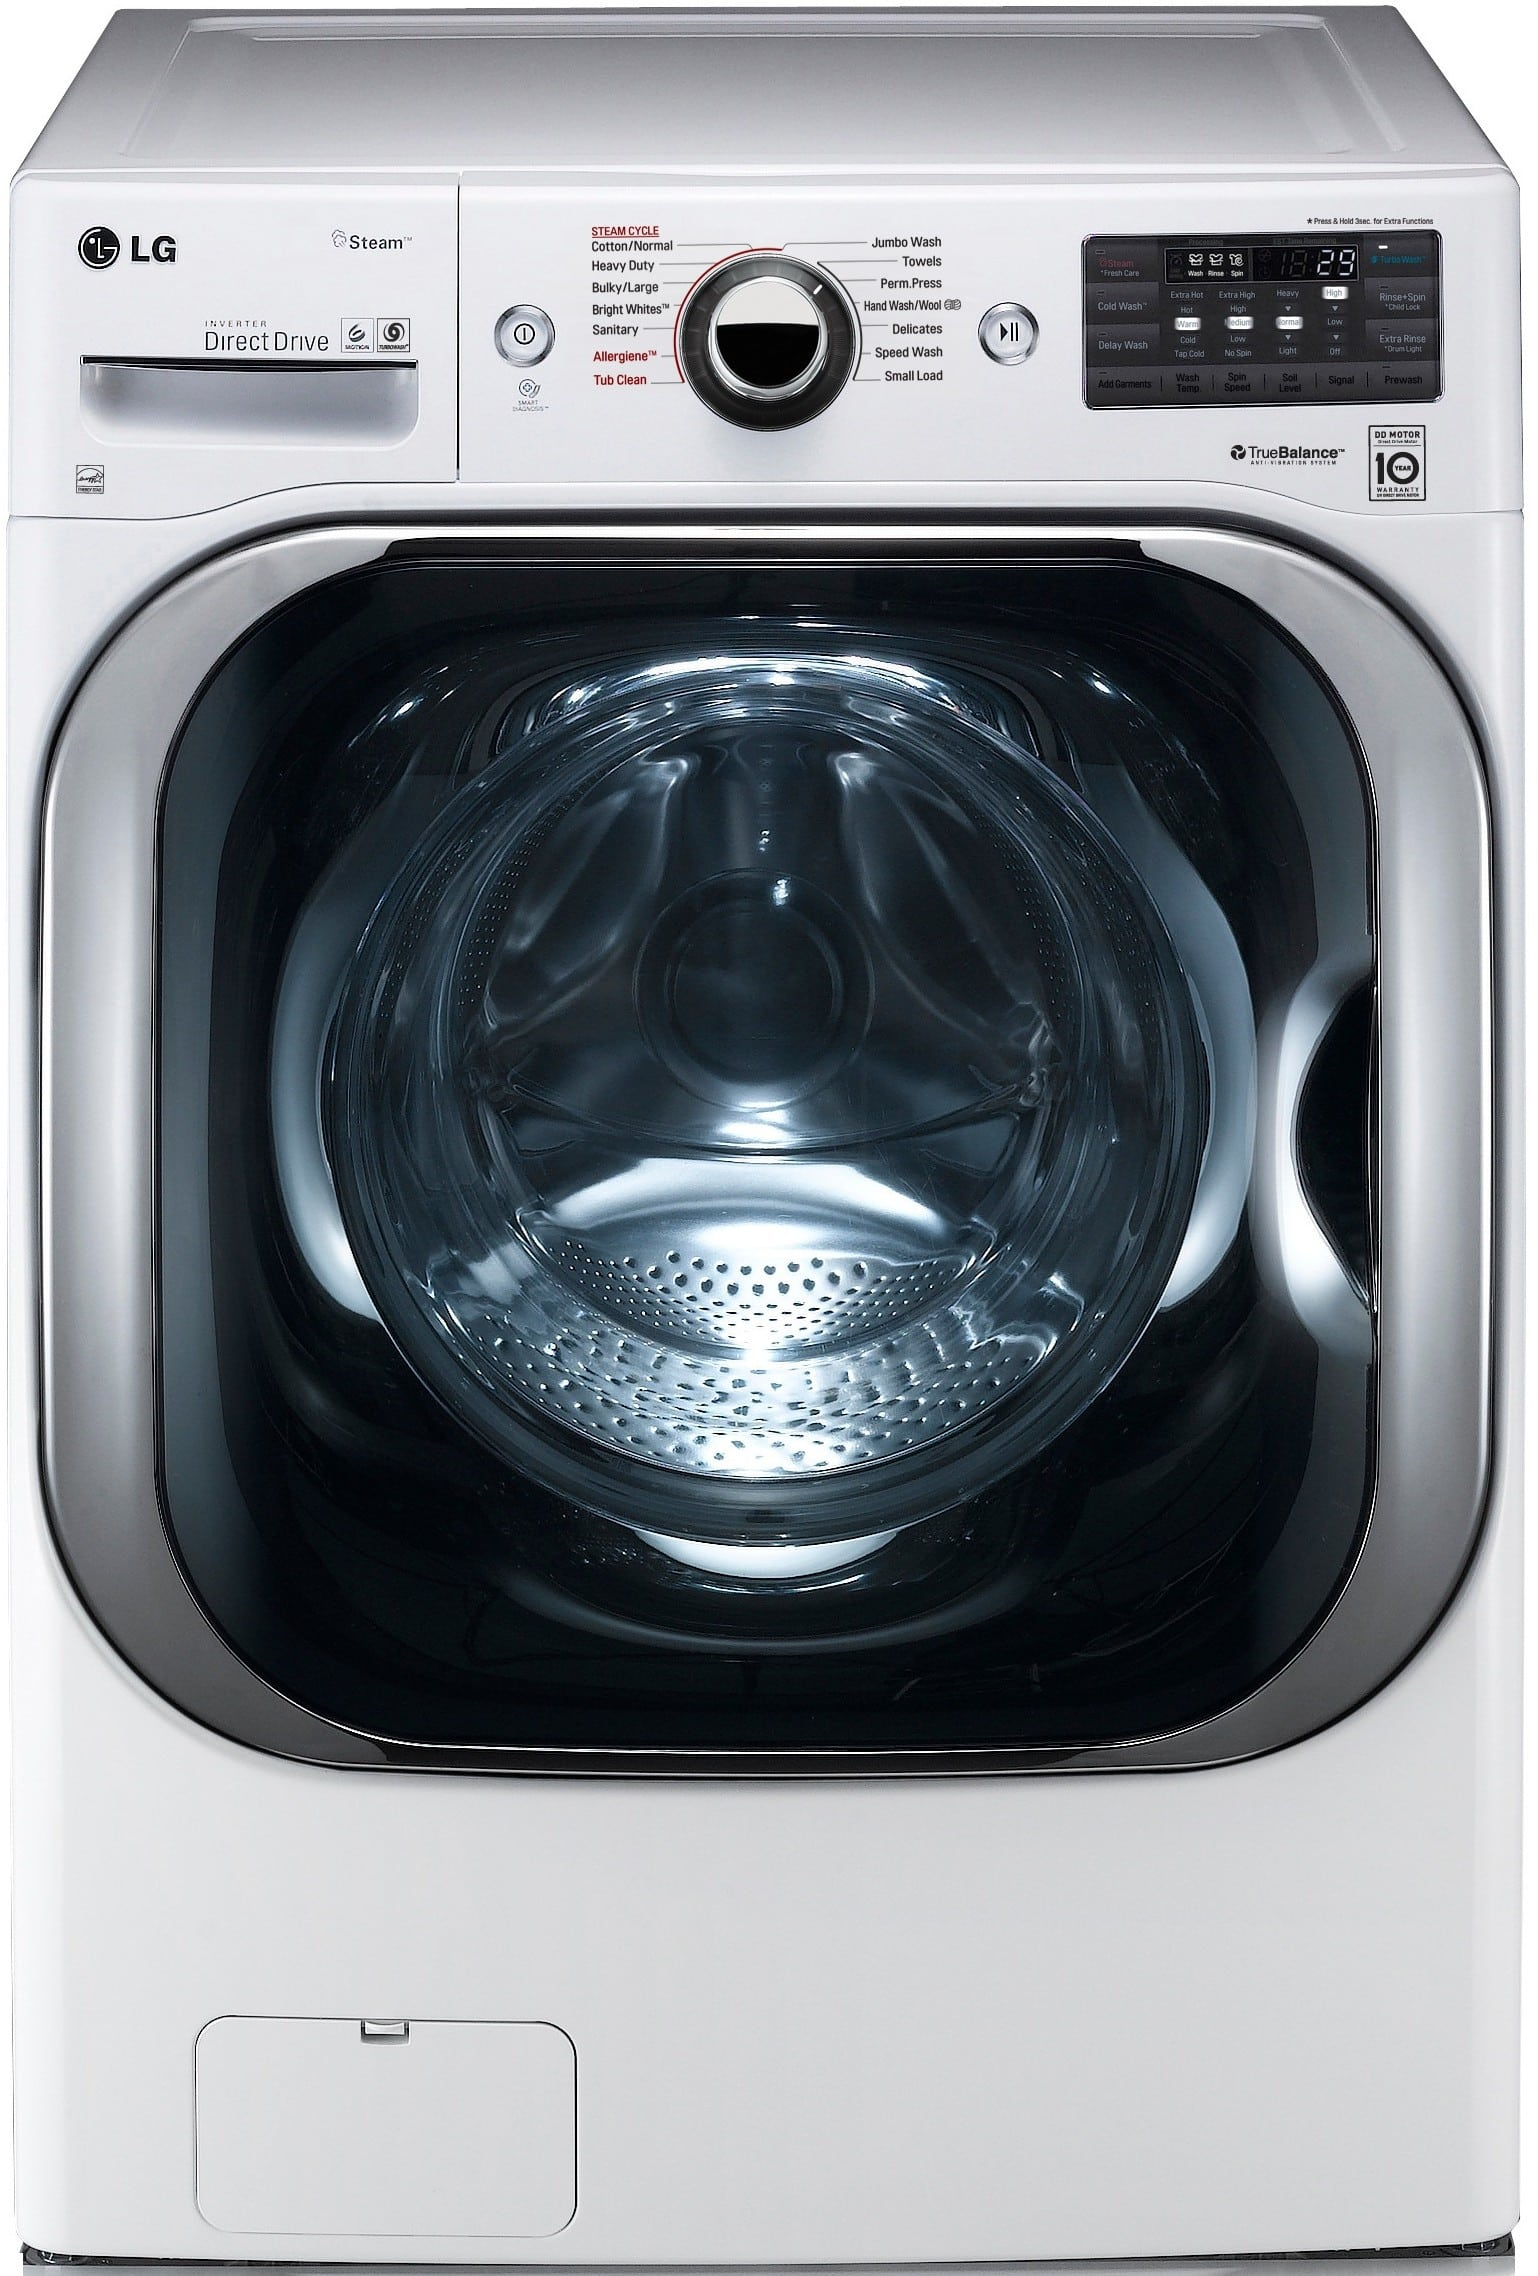 LG WM8100HWA 29 Inch 5 2 cu ft Front Load Washer with 14 Wash